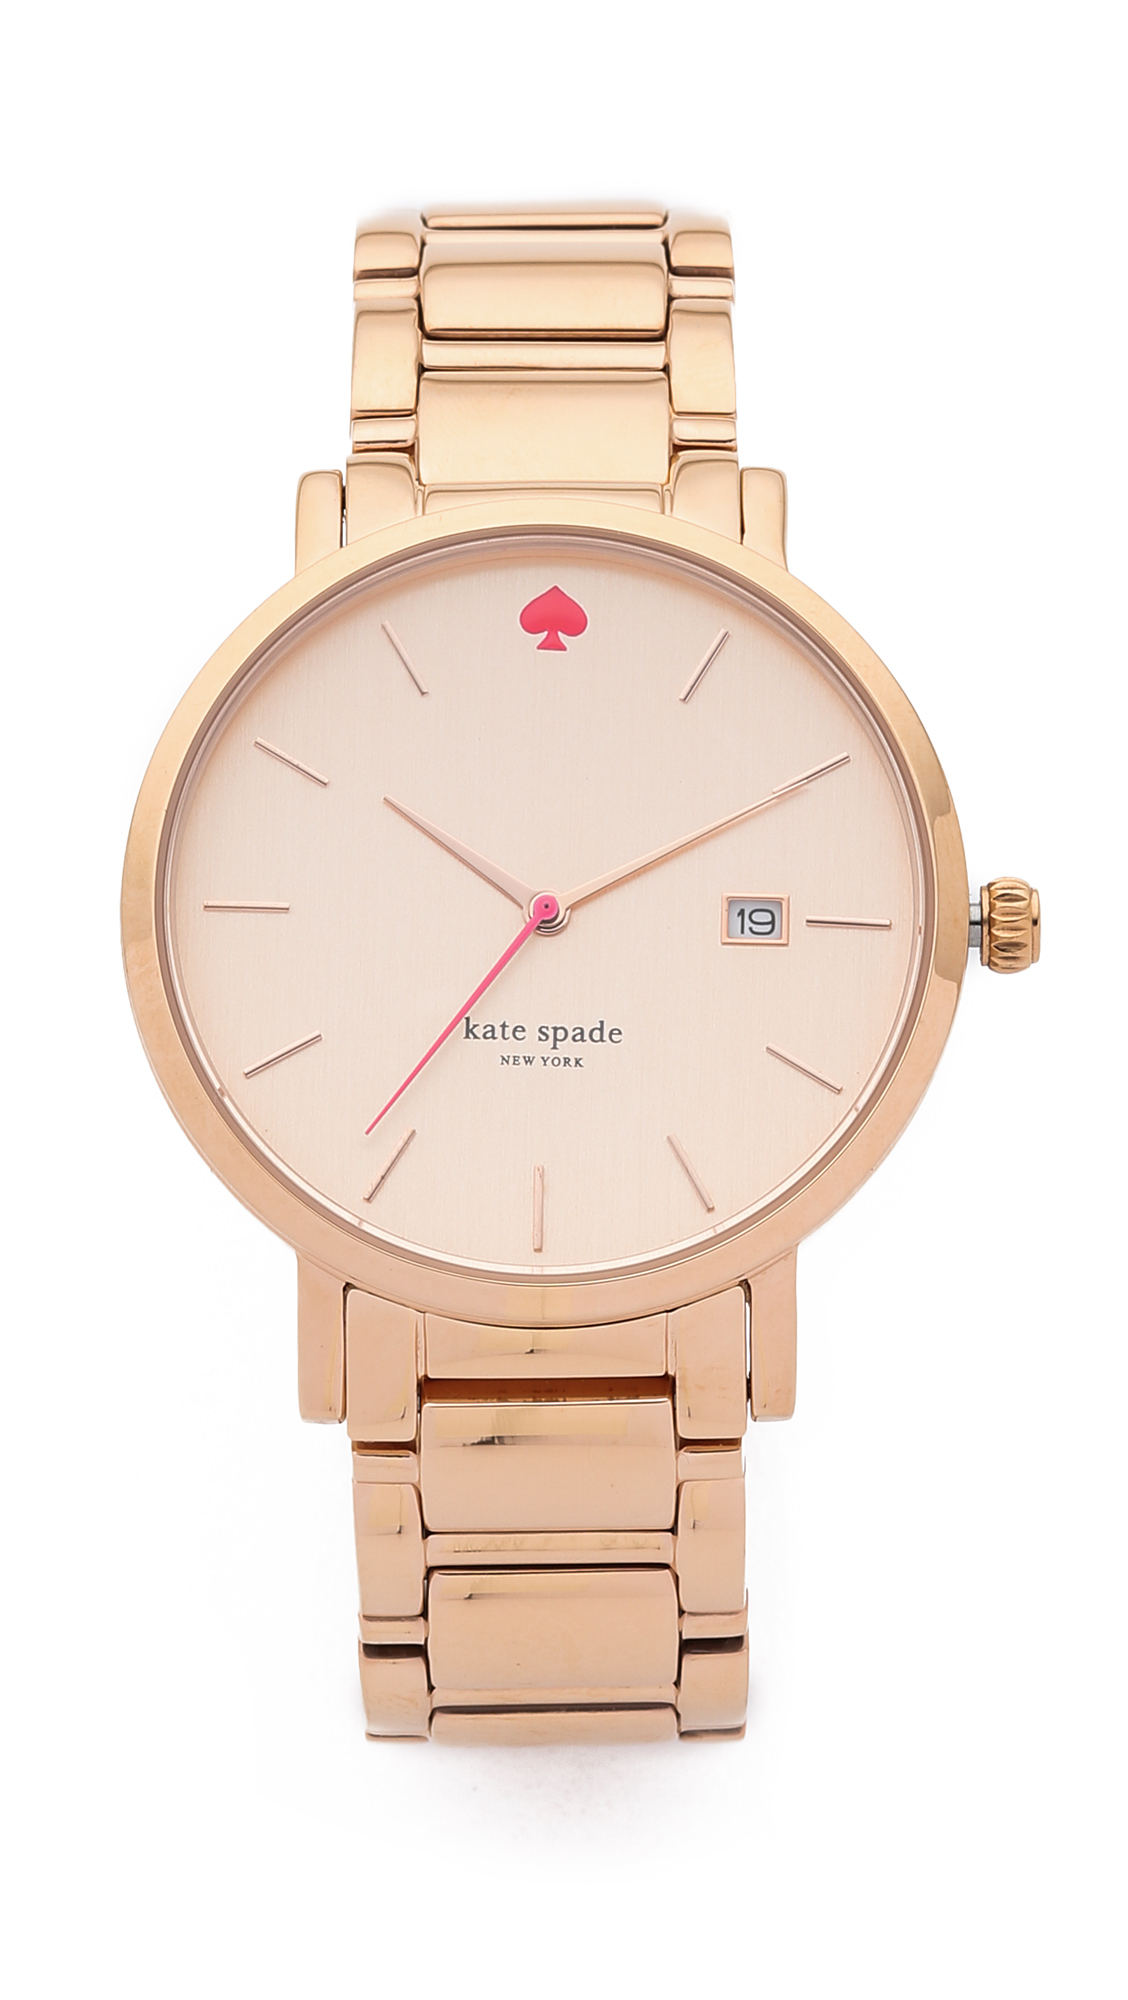 Kate Spade New York Gramercy Grand Watch - Rose Gold at Shopbop